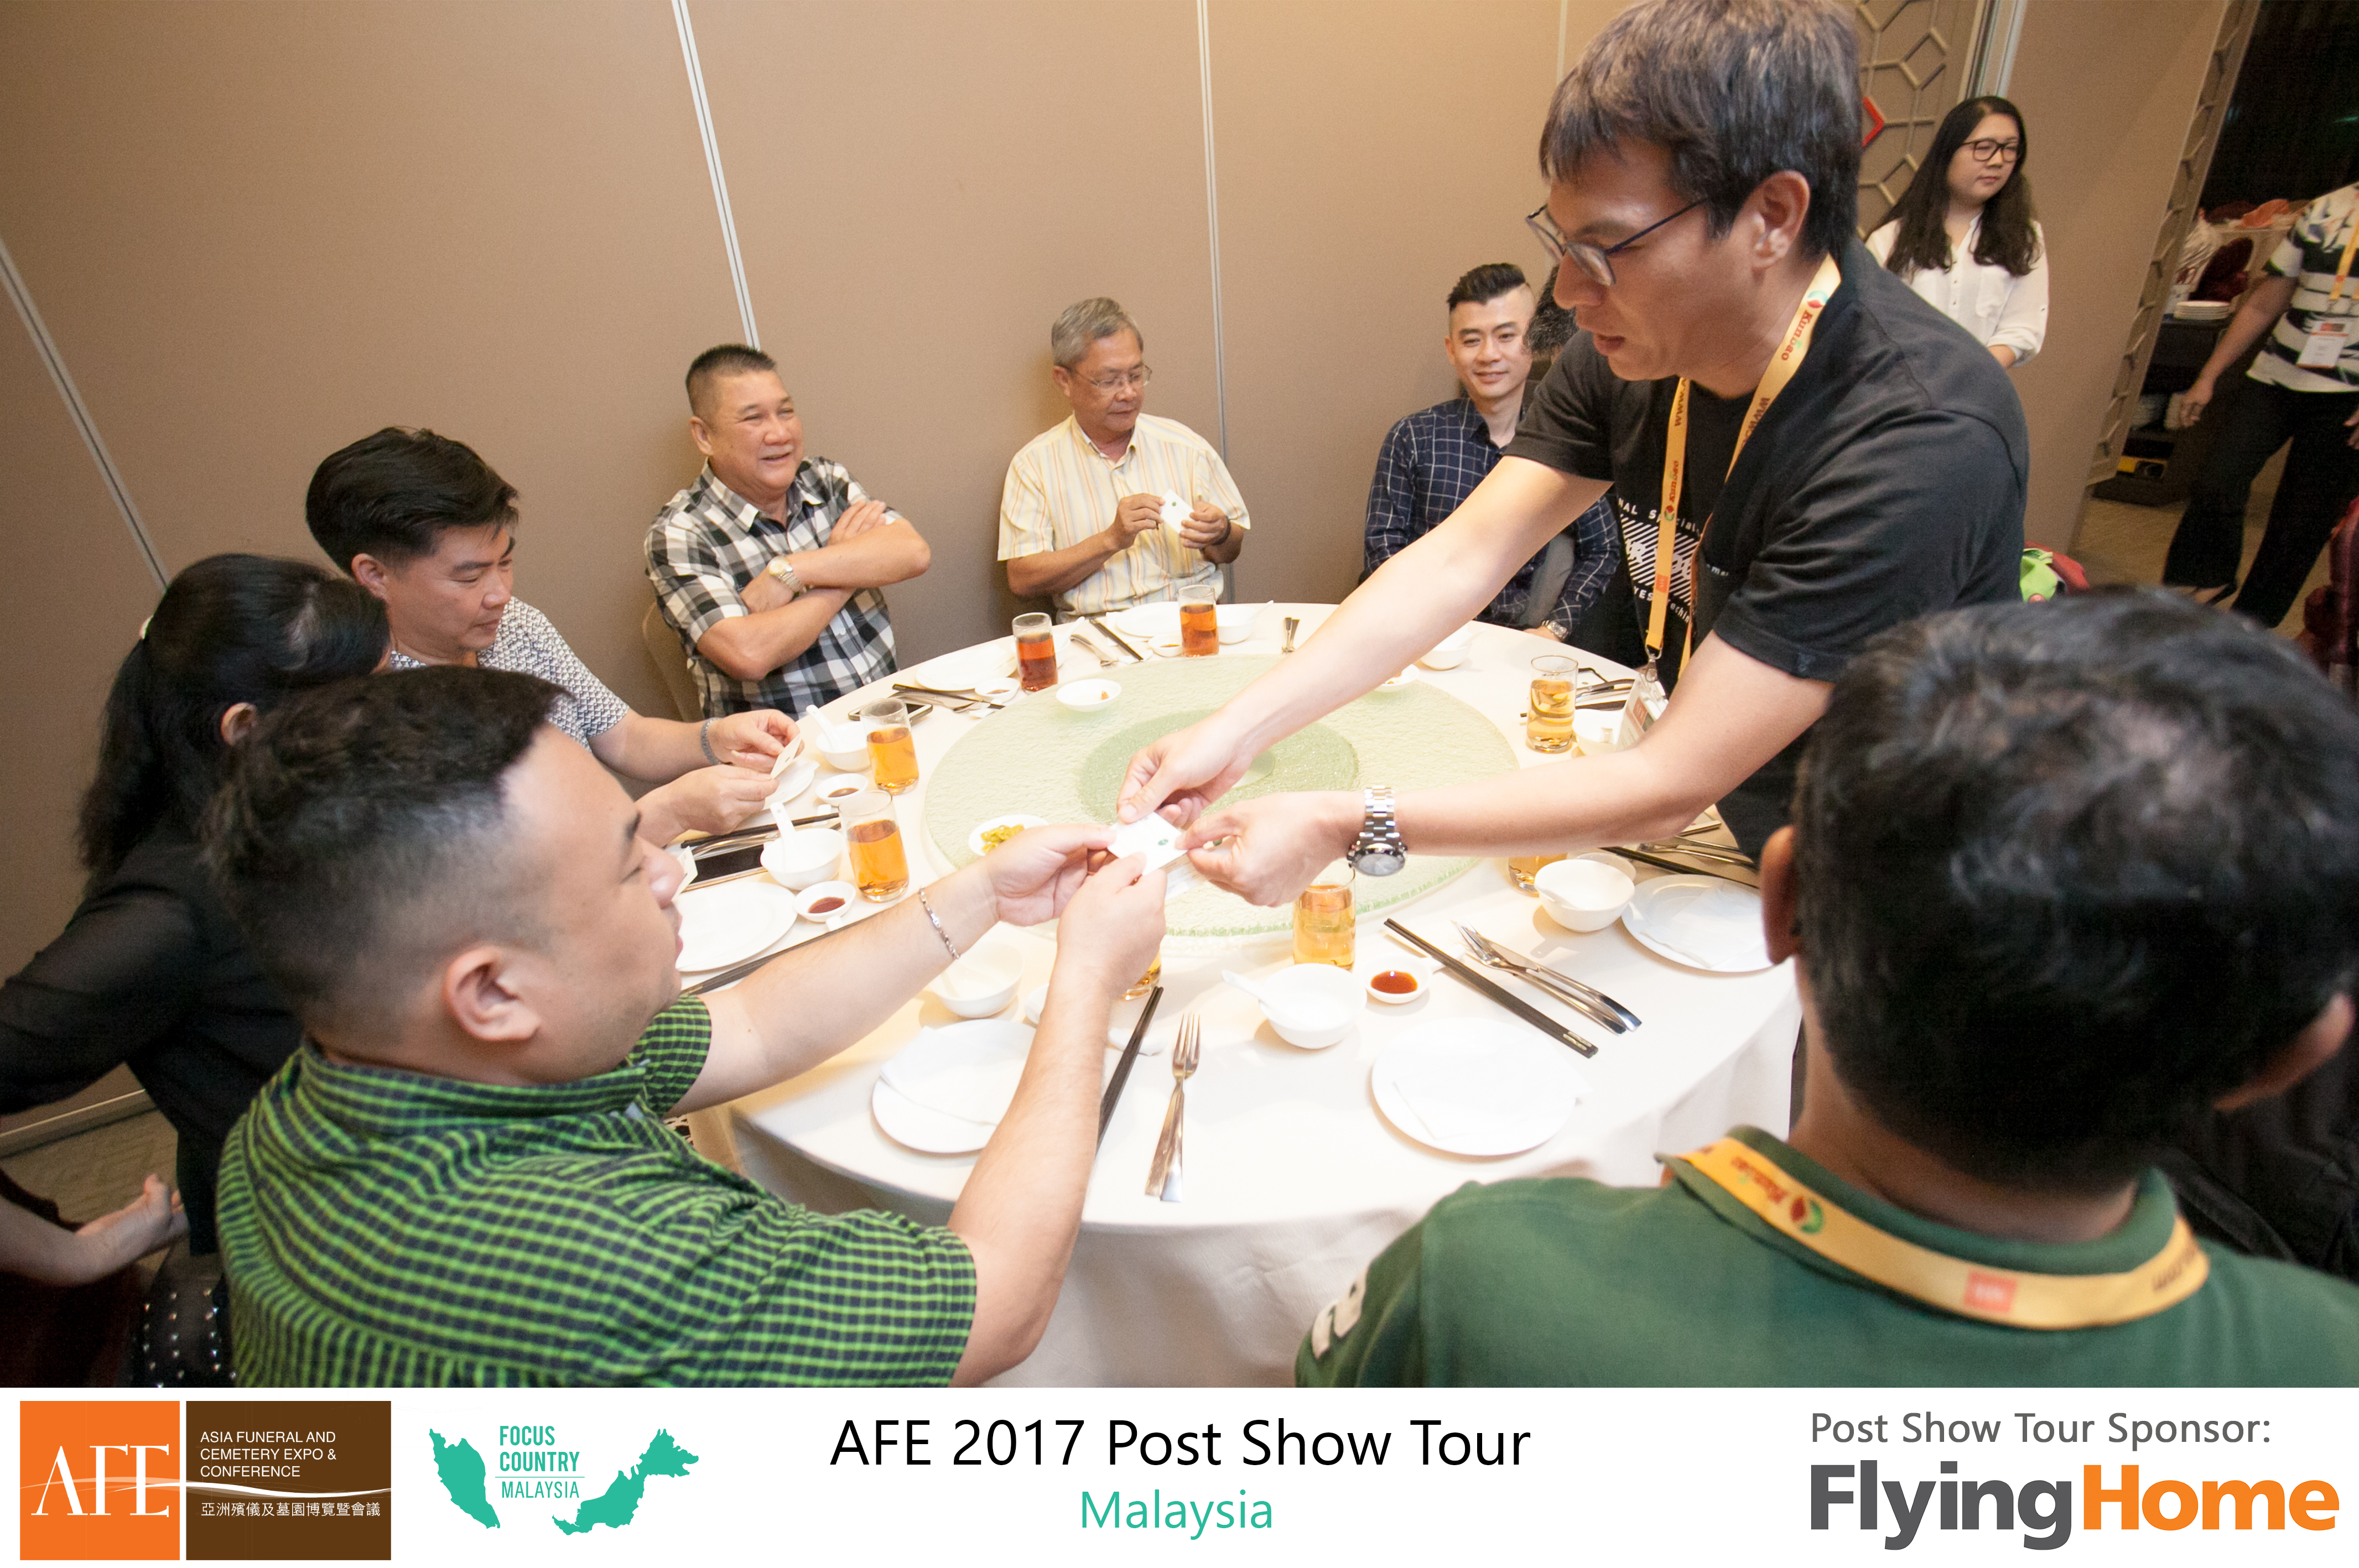 AFE Post Show Tour 2017 Day 1 - 09